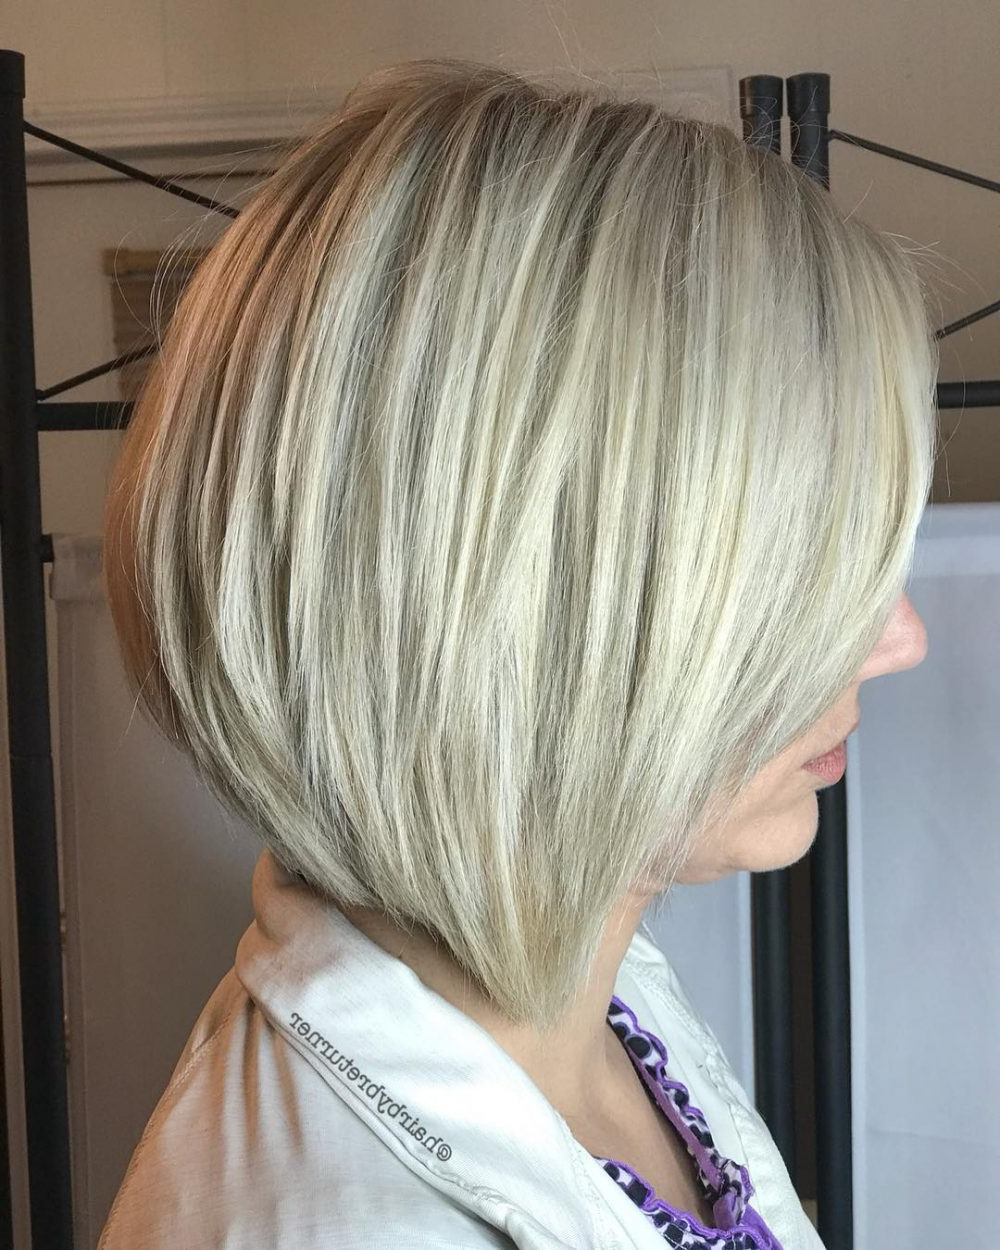 42 Sexiest Short Hairstyles For Women Over 40 In 2019 Within Favorite Choppy Medium Hairstyles For Older Women (View 1 of 20)